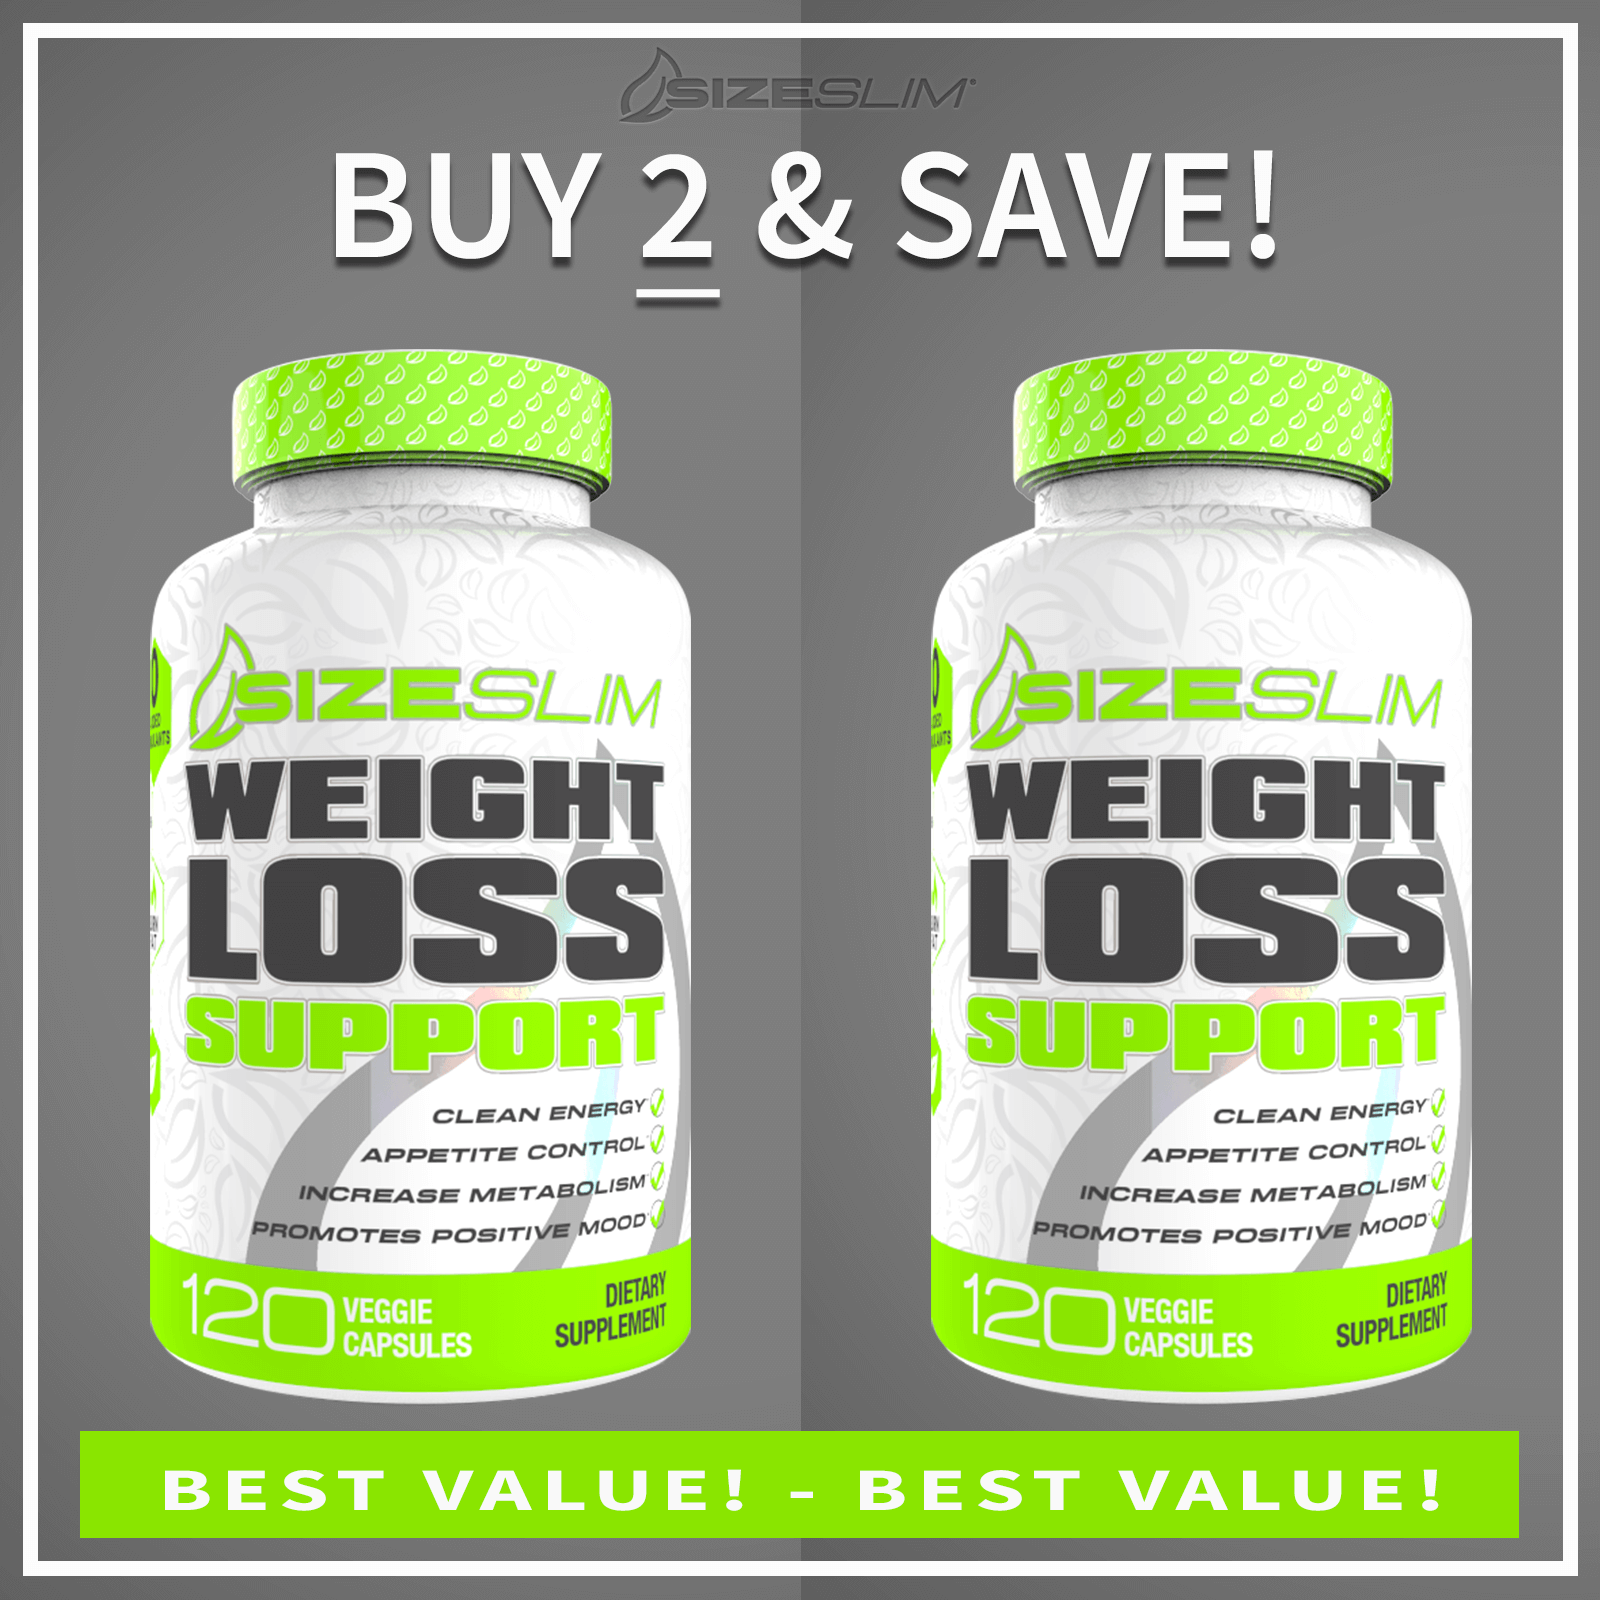 lose weight with support and natural slim botanical herbs